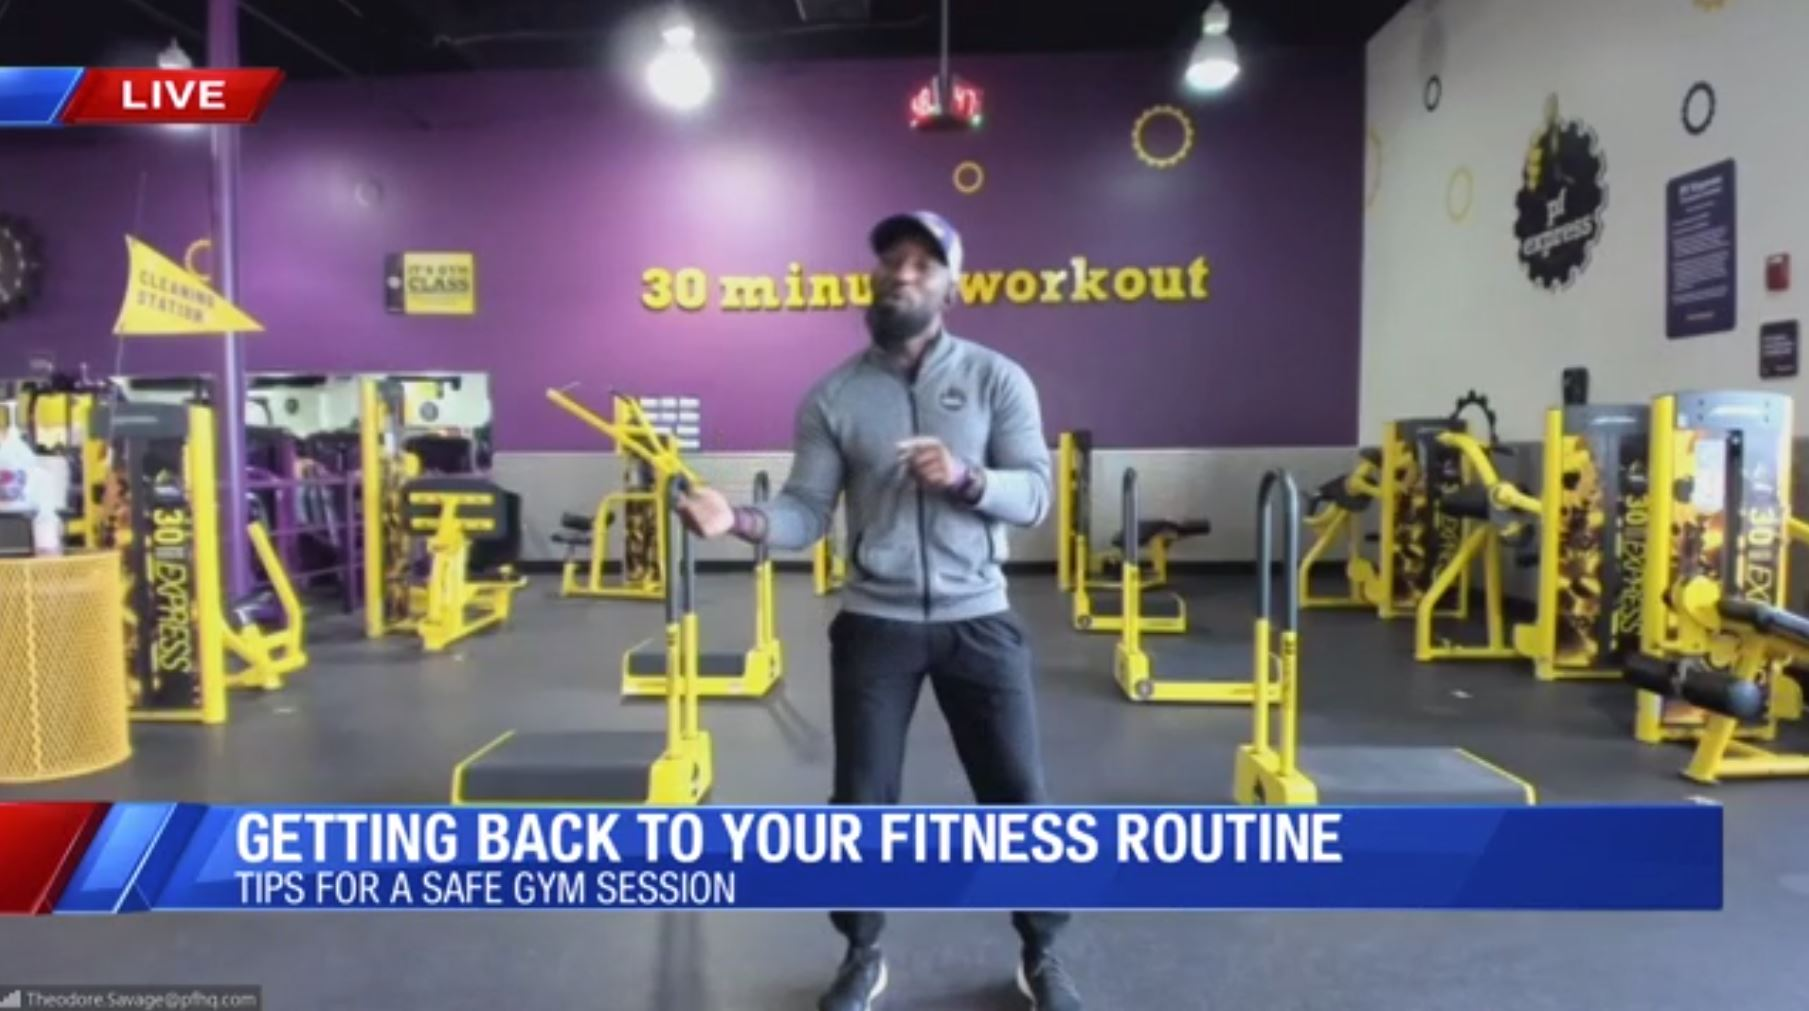 Getting Back Into Your Workout Routine Planet Fitness Joins Us Live On Cbs47 With Tips Yourcentralvalley Com